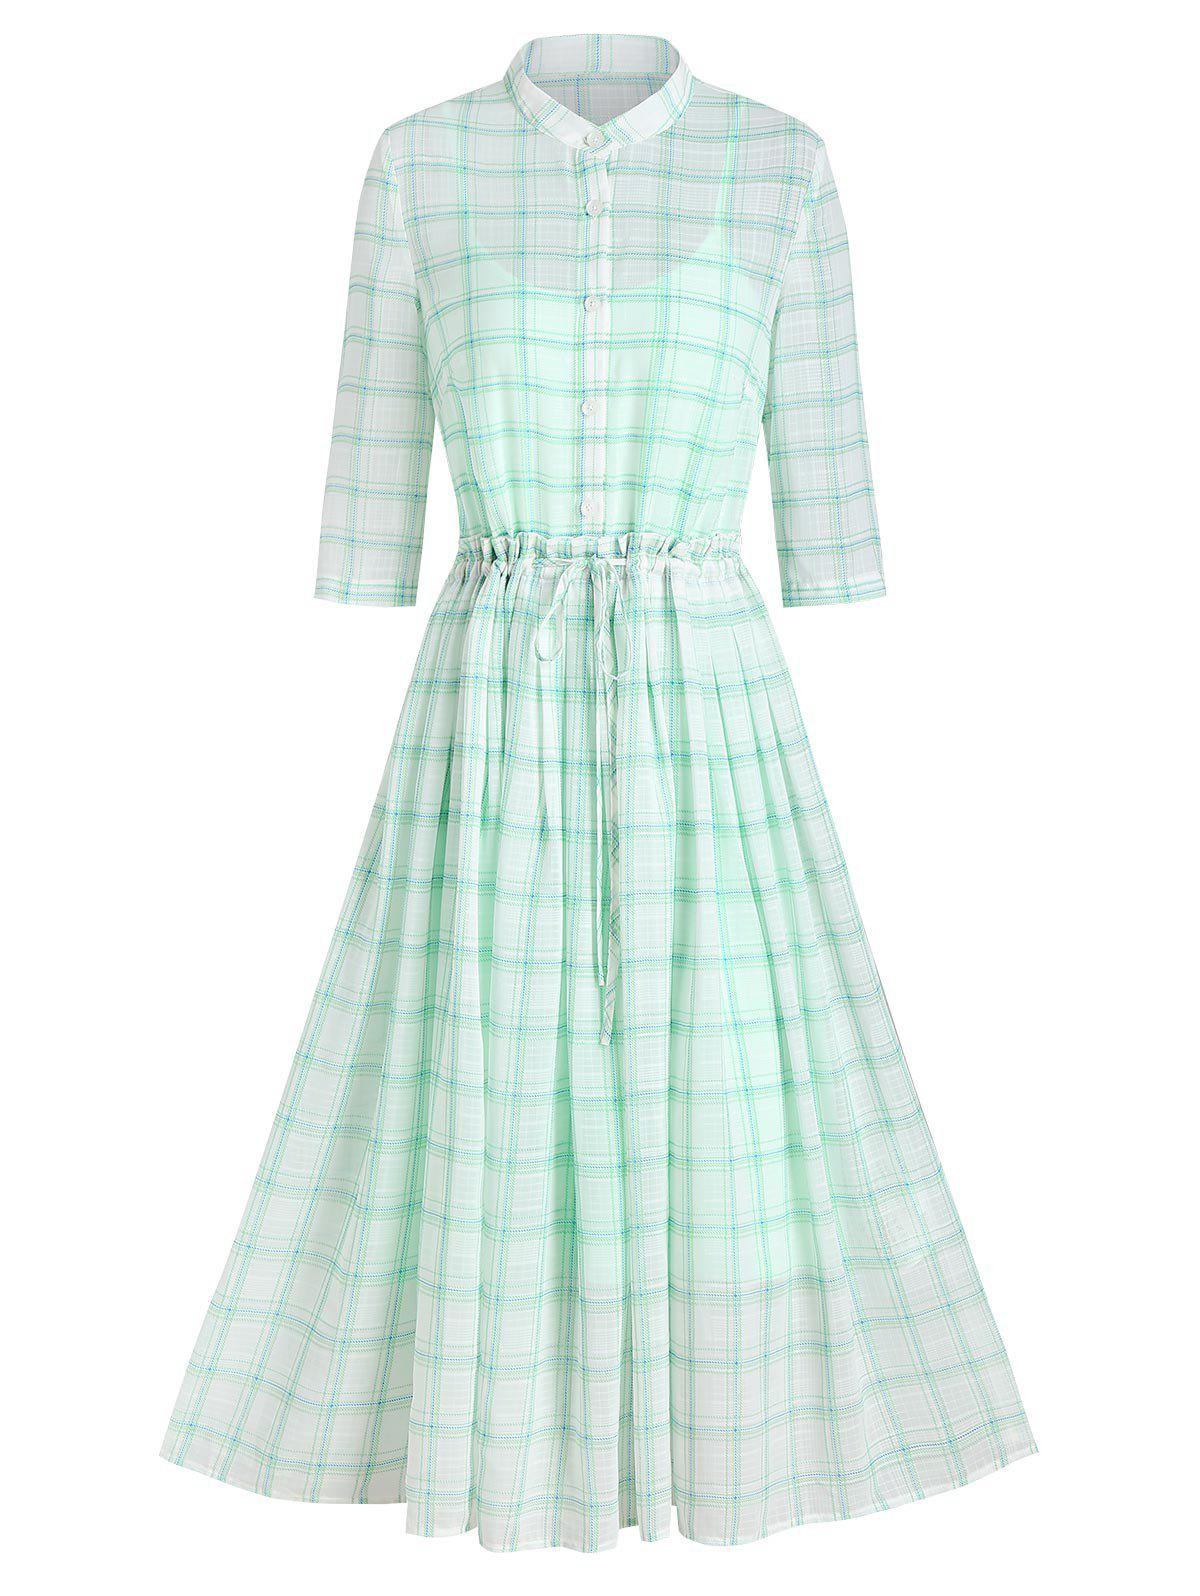 Plaid Print Toggle Drawstring Dress and Slip Dress - ALGAE GREEN 2XL